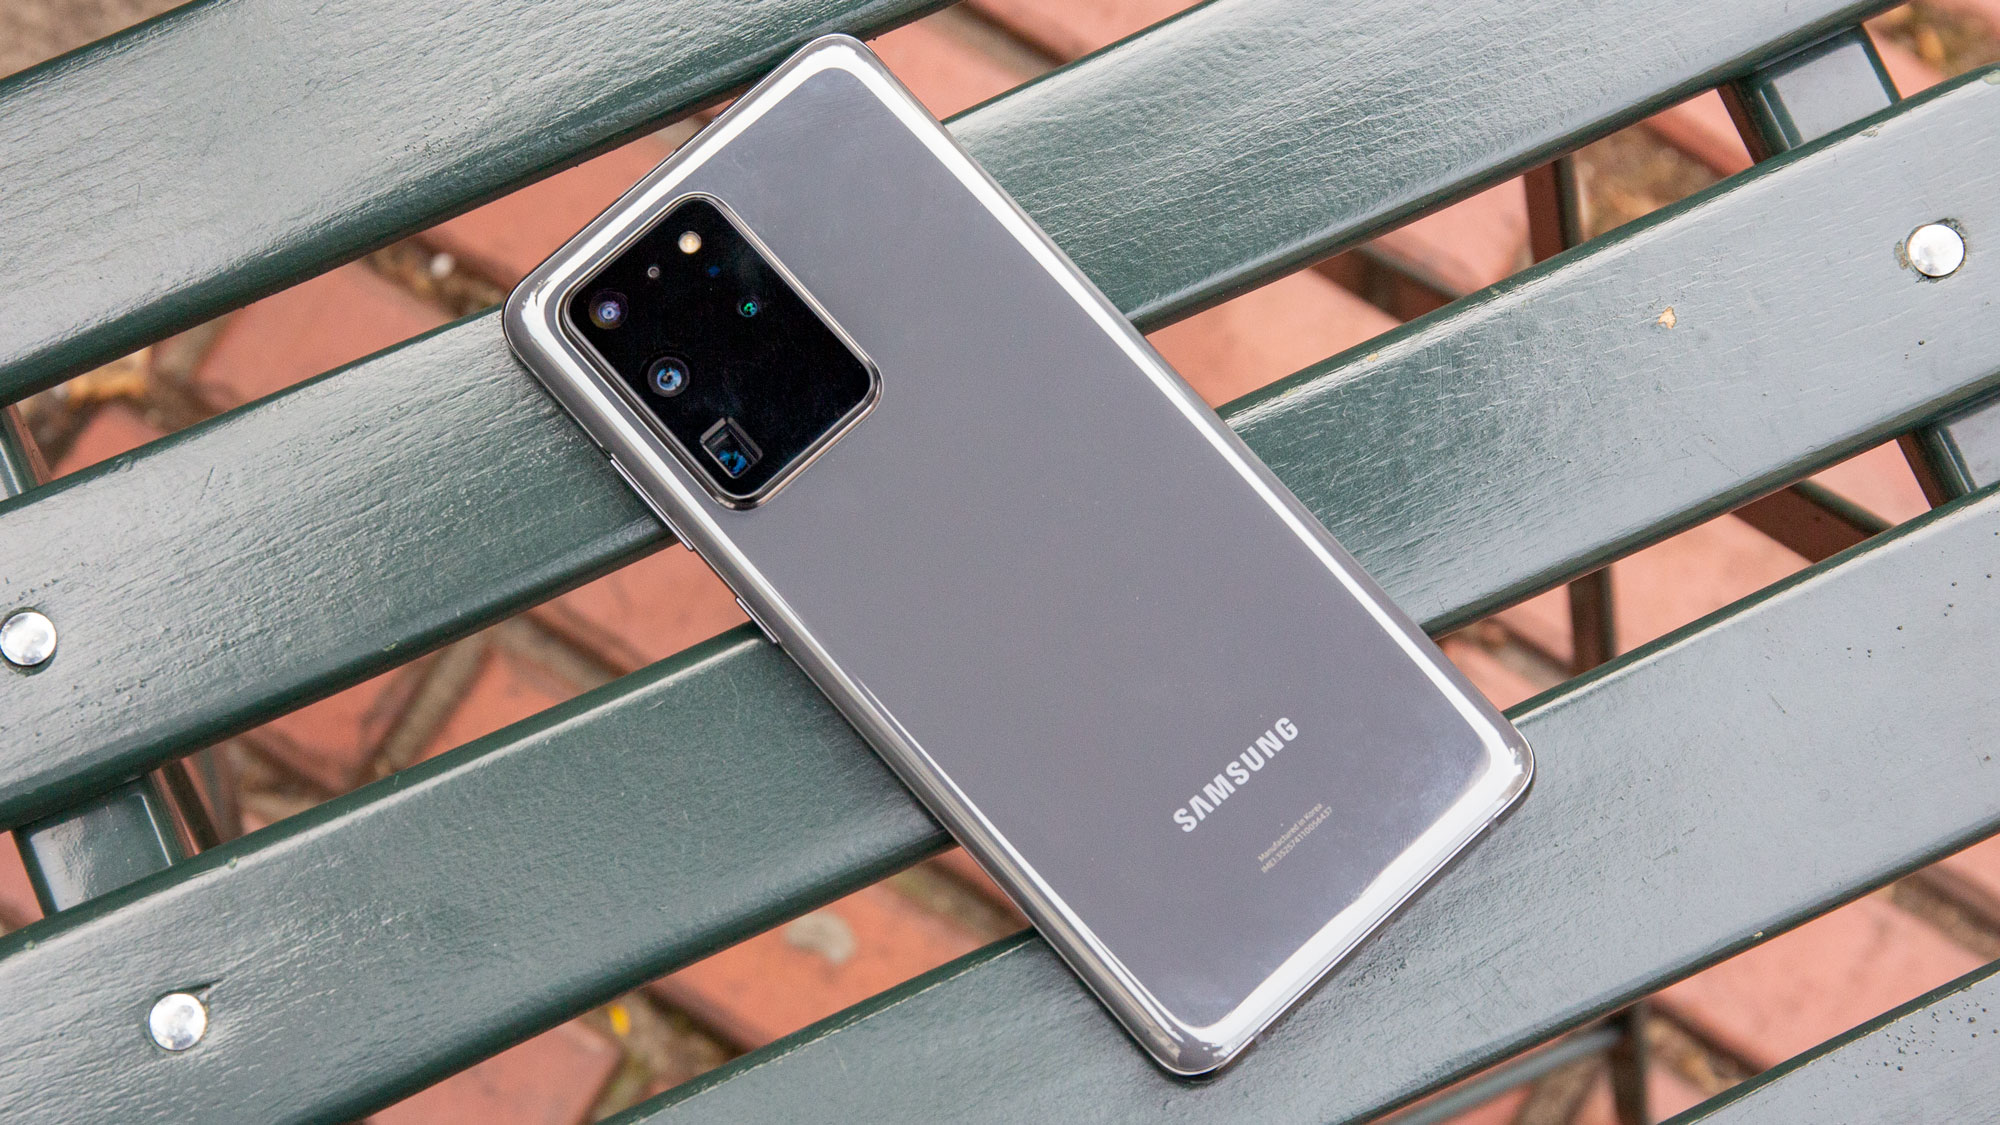 Samsung Galaxy Note 20 looks set to skip the Galaxy S20 Ultra's headline feature